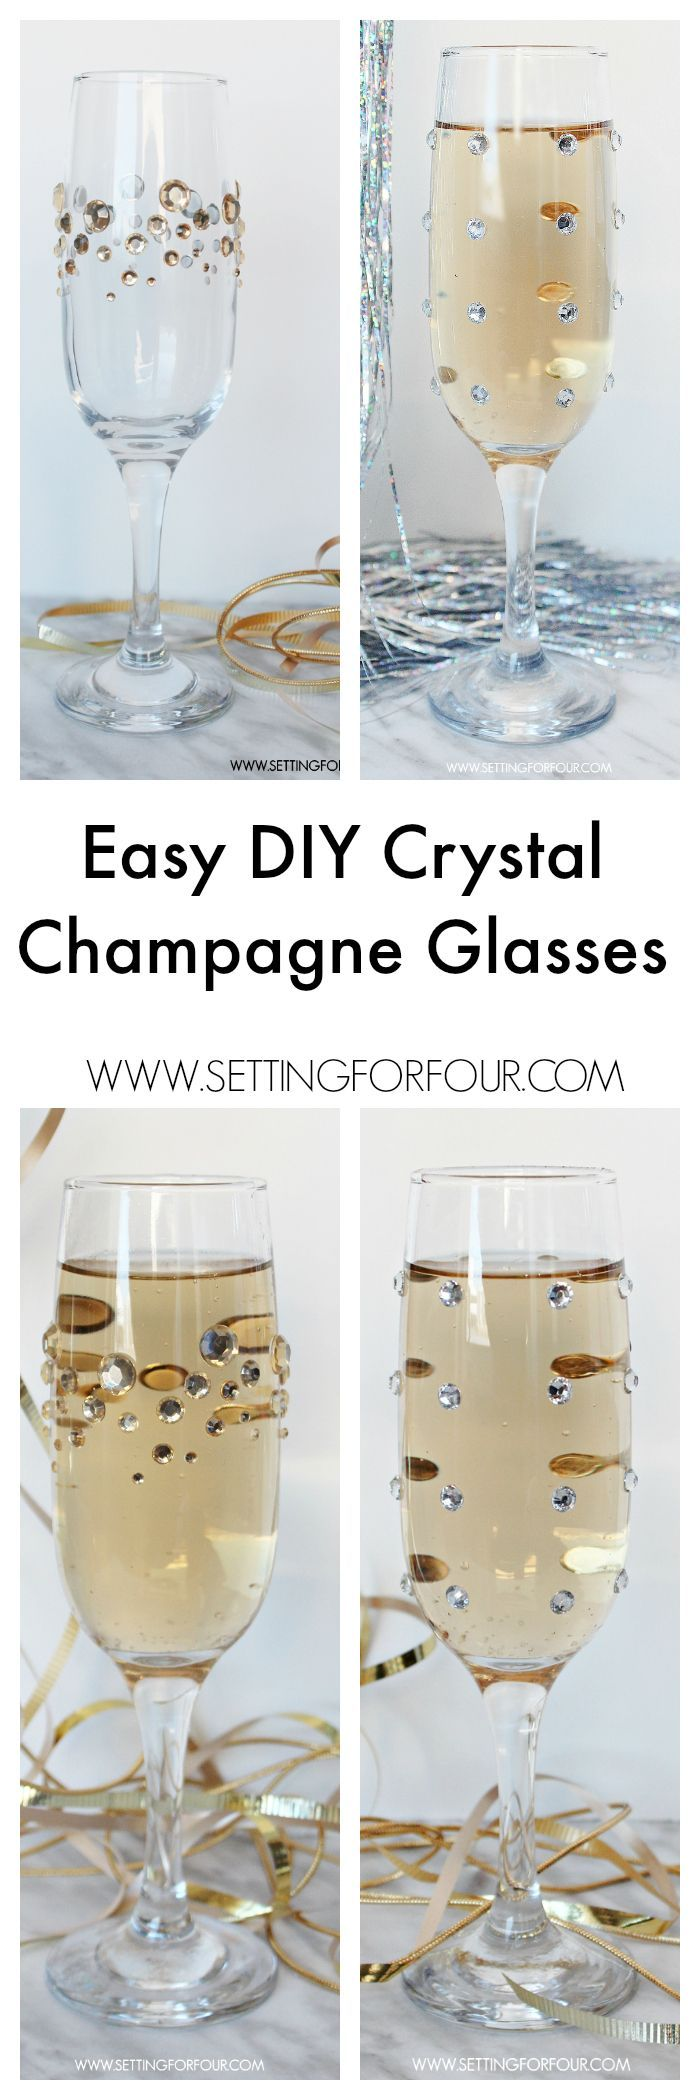 Fast, Fun and Fabulous! Make beautiful, quick and easy DIY Glamourous Crystal Rhinestone Champagne glasses for your next party! Inexpensive idea for wedding receptions too! Dress up plain party glasses with some pretty sparkle and shine. You won't believe how straightforward this tutorial is!  www.settingforfour.com